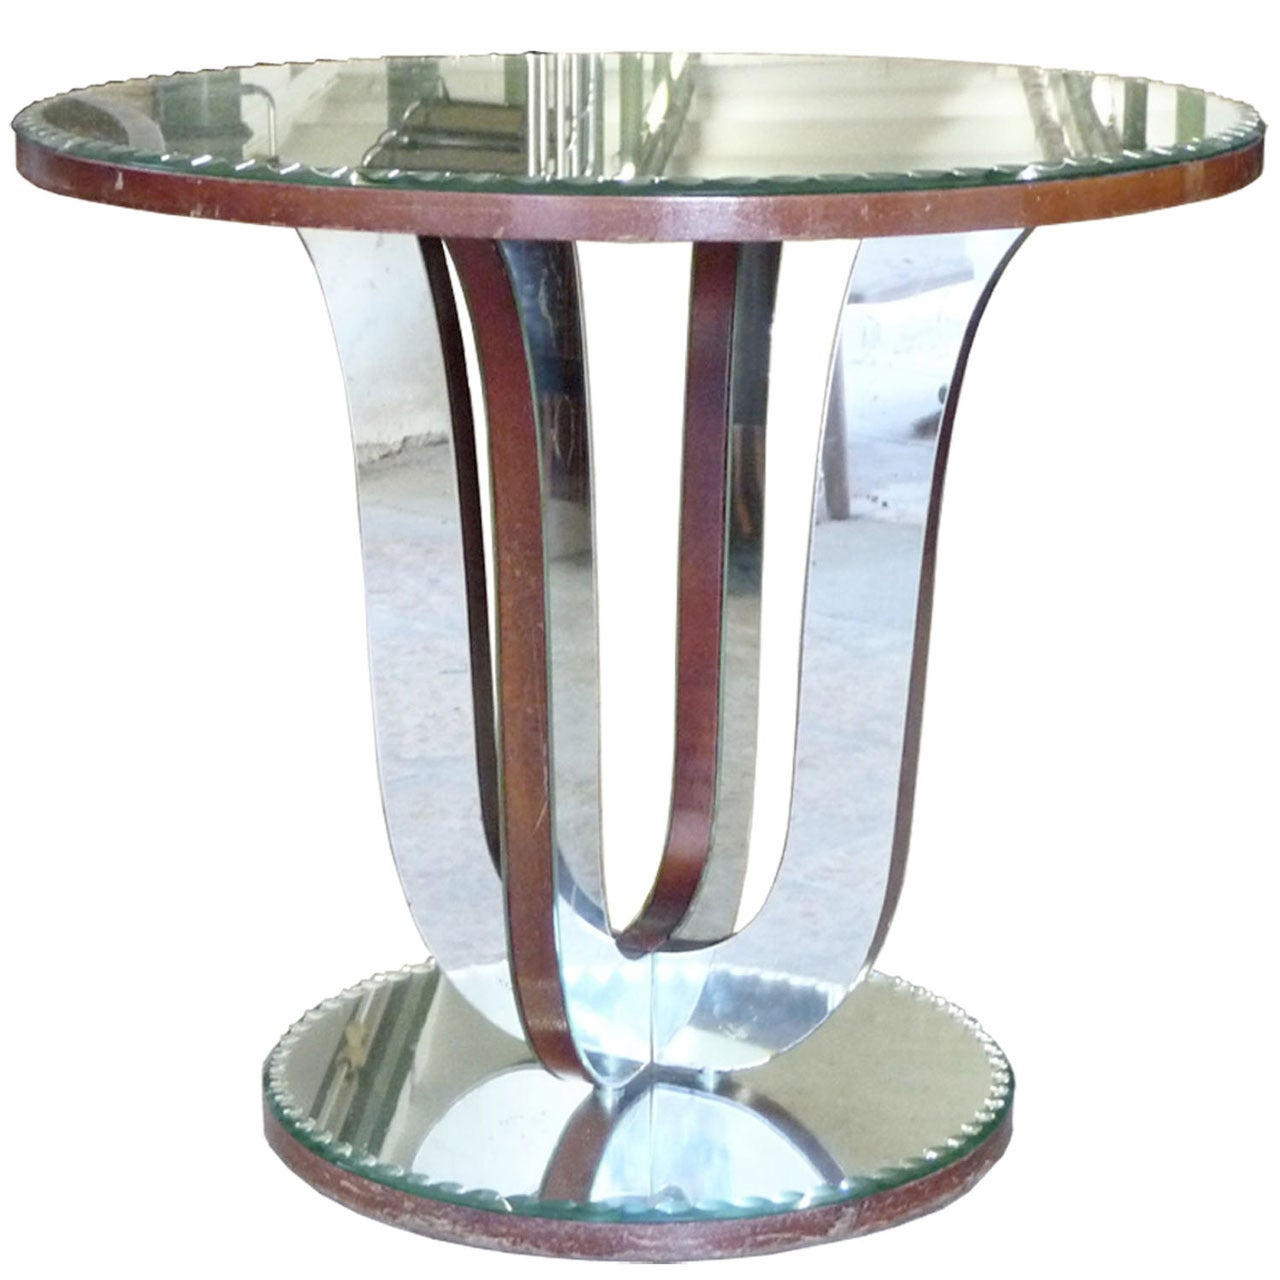 Decorative Mirror Table French Art Deco Mirrored Table